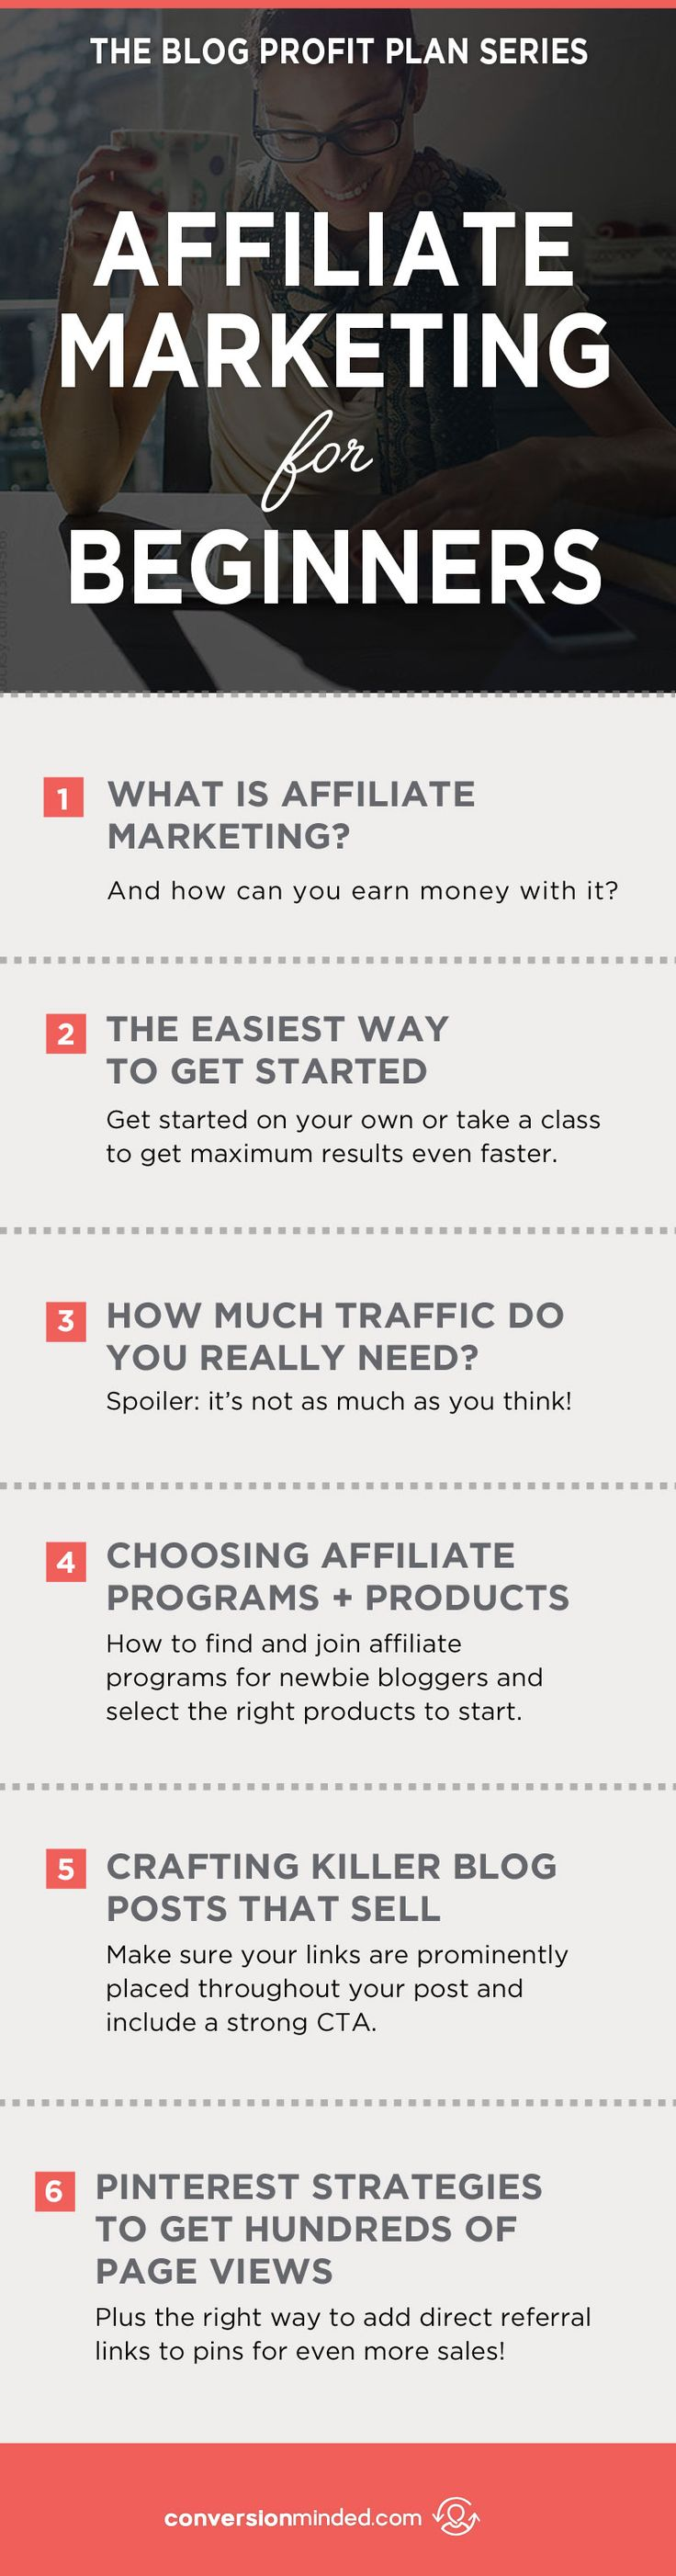 Affiliate Marketing for Beginners | Have you been wanting to try affiliate marketing for your blog, but wonder if it's just too hard or maybe even a waste of time? This post is for you! I'm sharing everything I've learned from the Making Sense of Affiliate Marketing Course to help entrepreneurs and bloggers get started with affiliate marketing with ease! Click through to see all the course highlights!